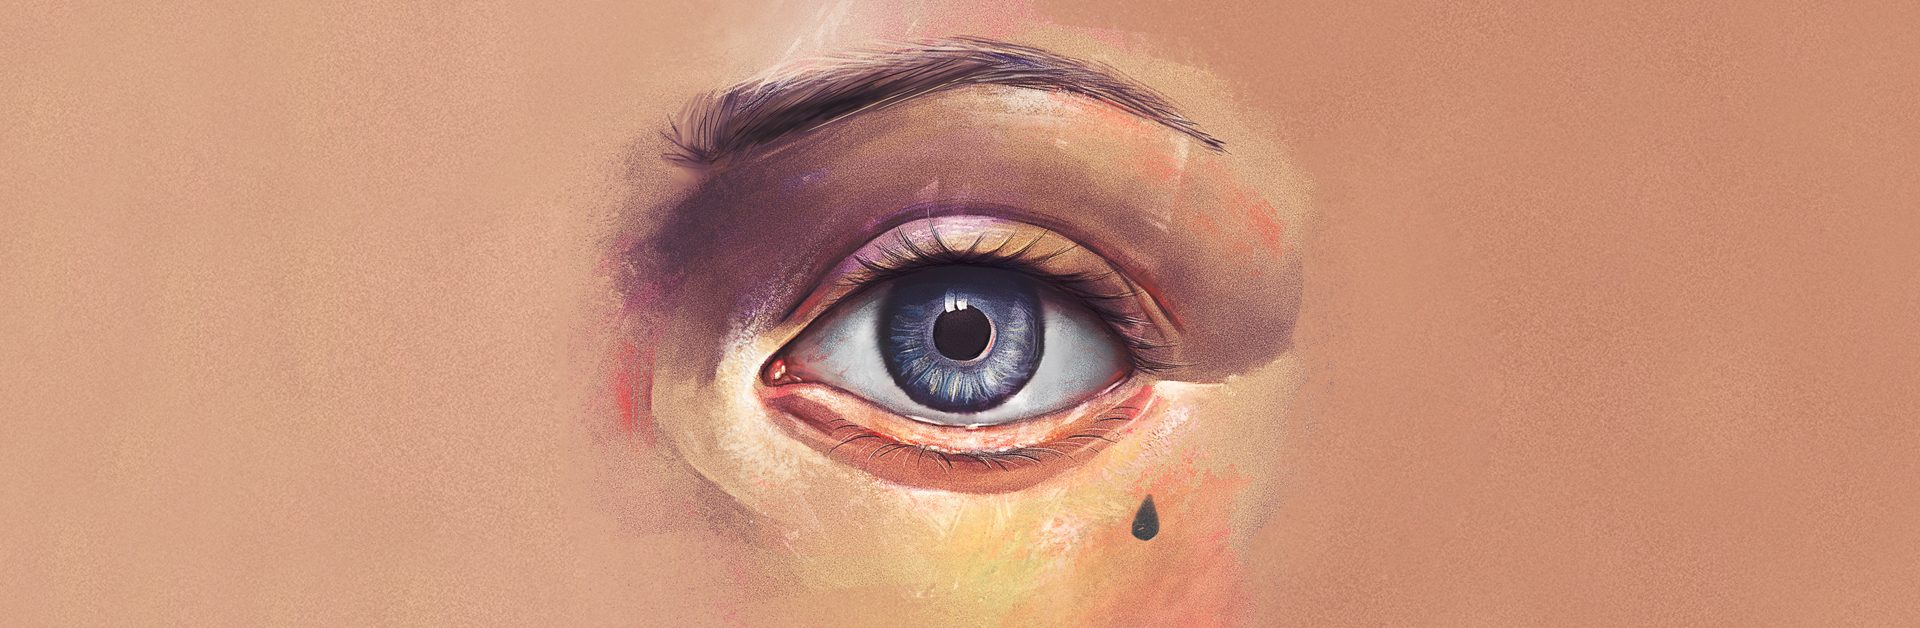 Paintable how to paint realistic eyes the ultimate digital painting 21 jul 2016 baditri Choice Image